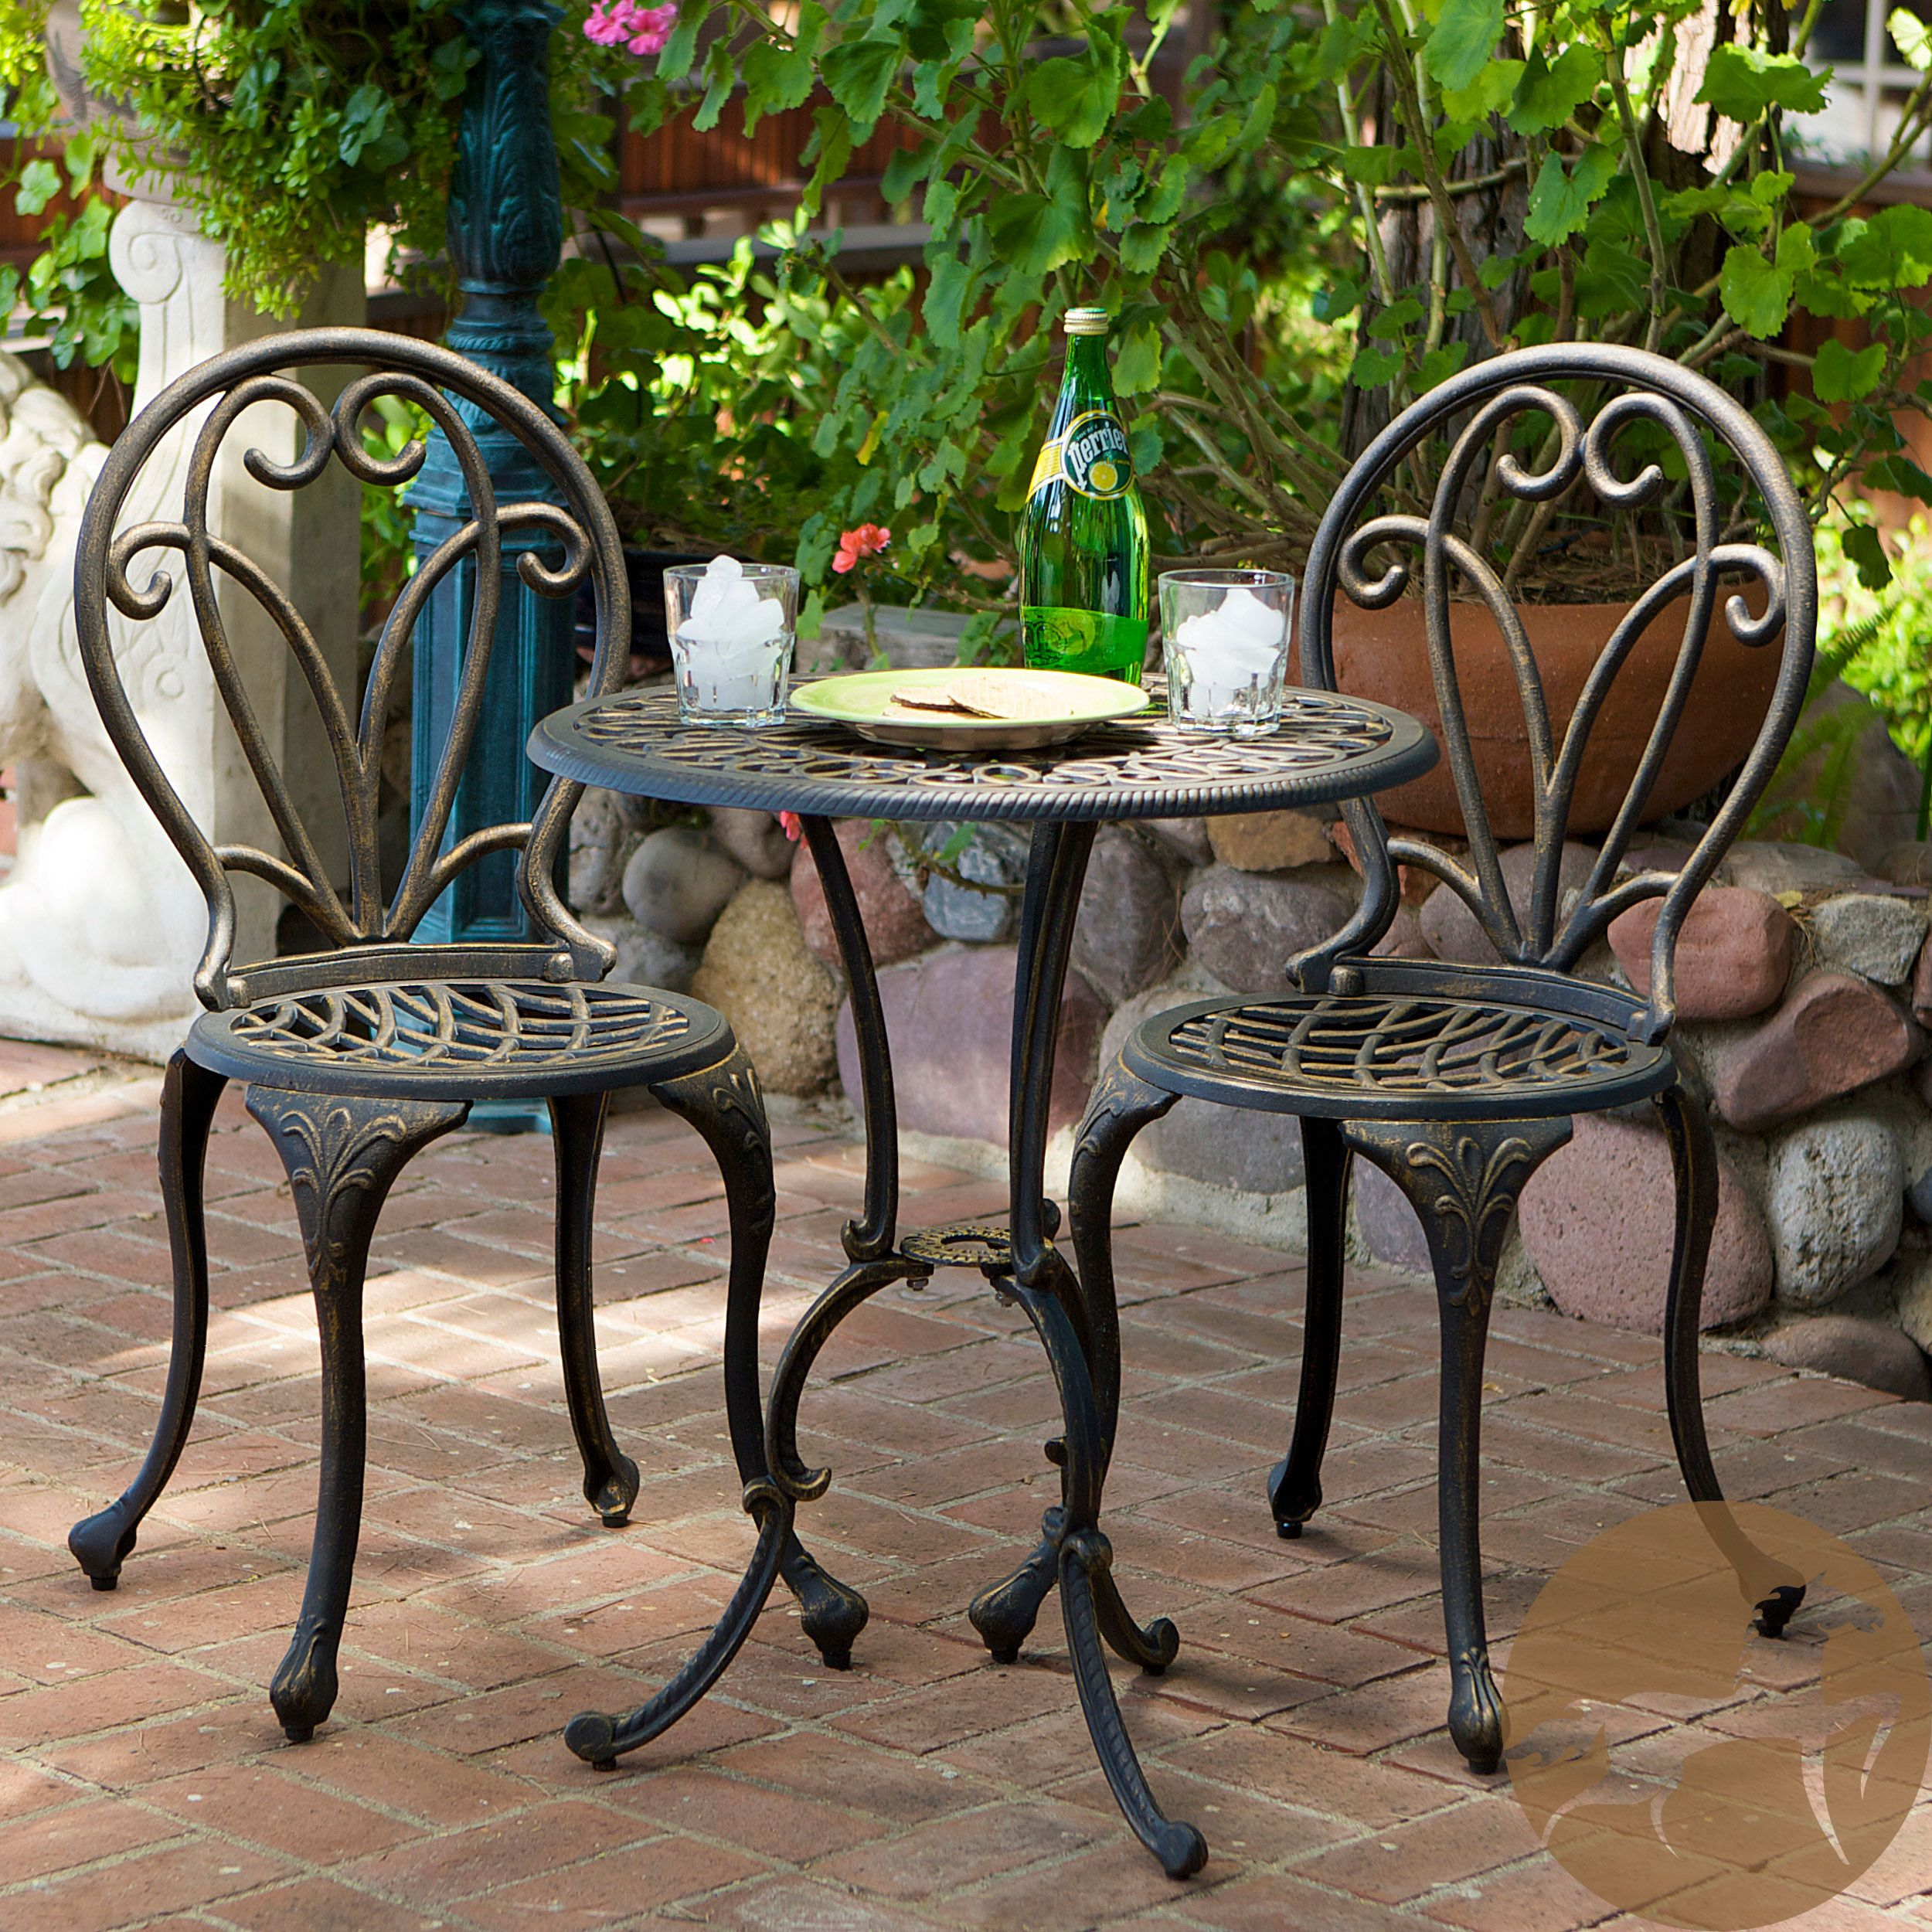 This French Style Outdoor Bistro Set Will Lend Cly To Your Patio The Is Constructed Of Cast Aluminum In Dark Gold Color With Iron Legs